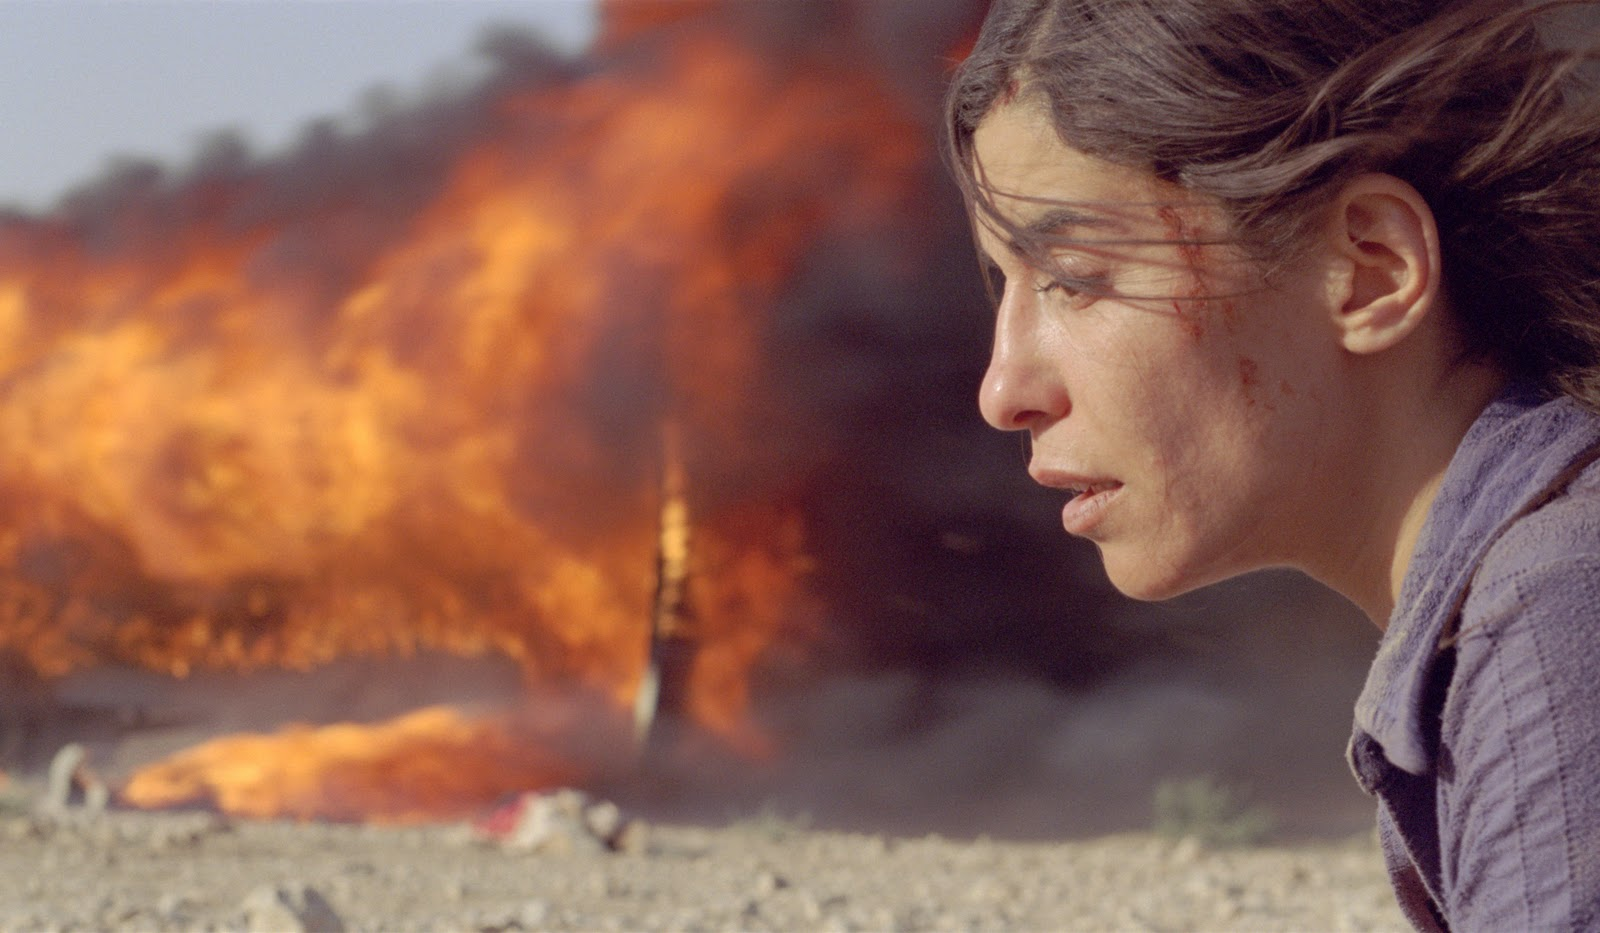 Incendies (2010)